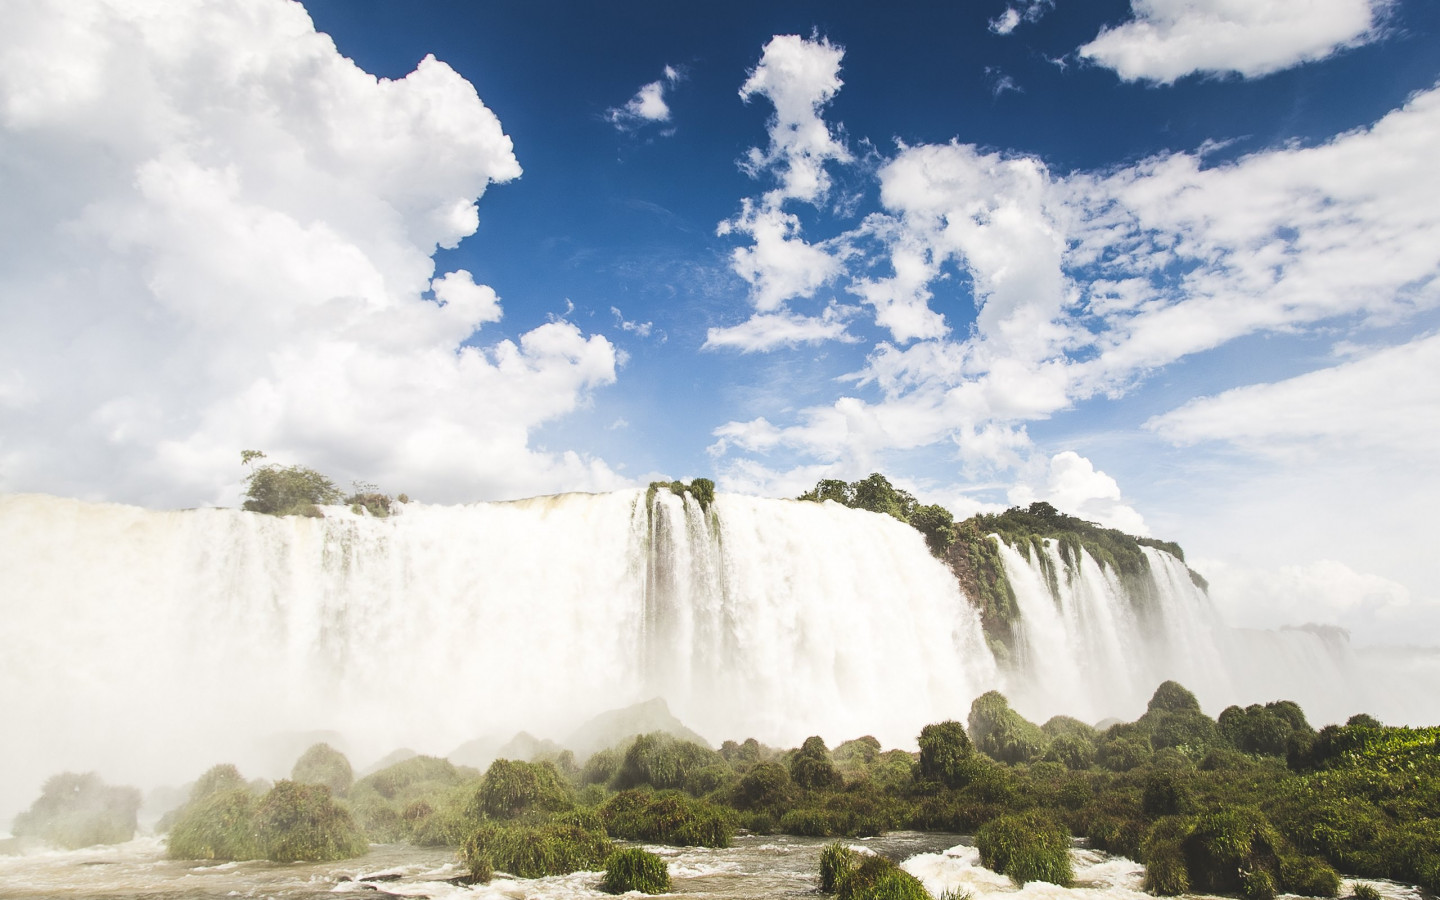 Iguazu waterfalls wallpaper 1440x900